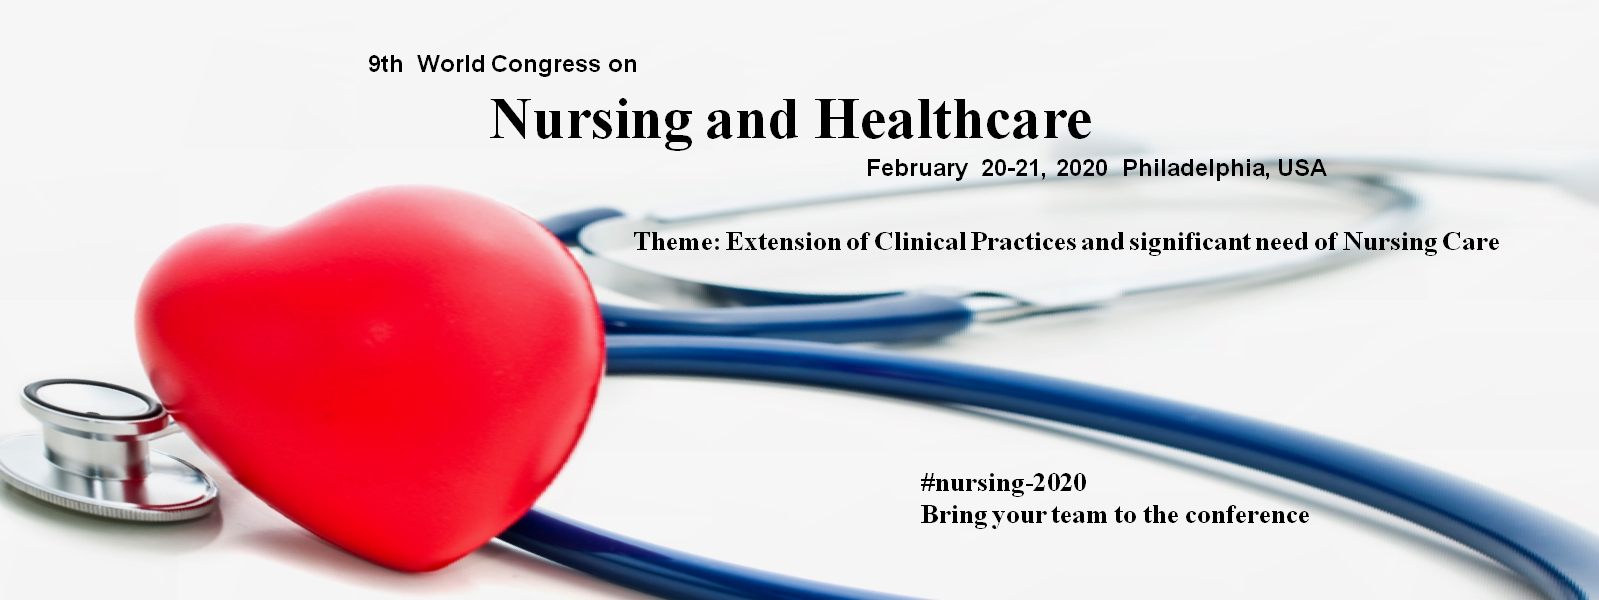 World Congress On Nursing And Healthcare | Nursing-2020  Healthcare Recognition 2020